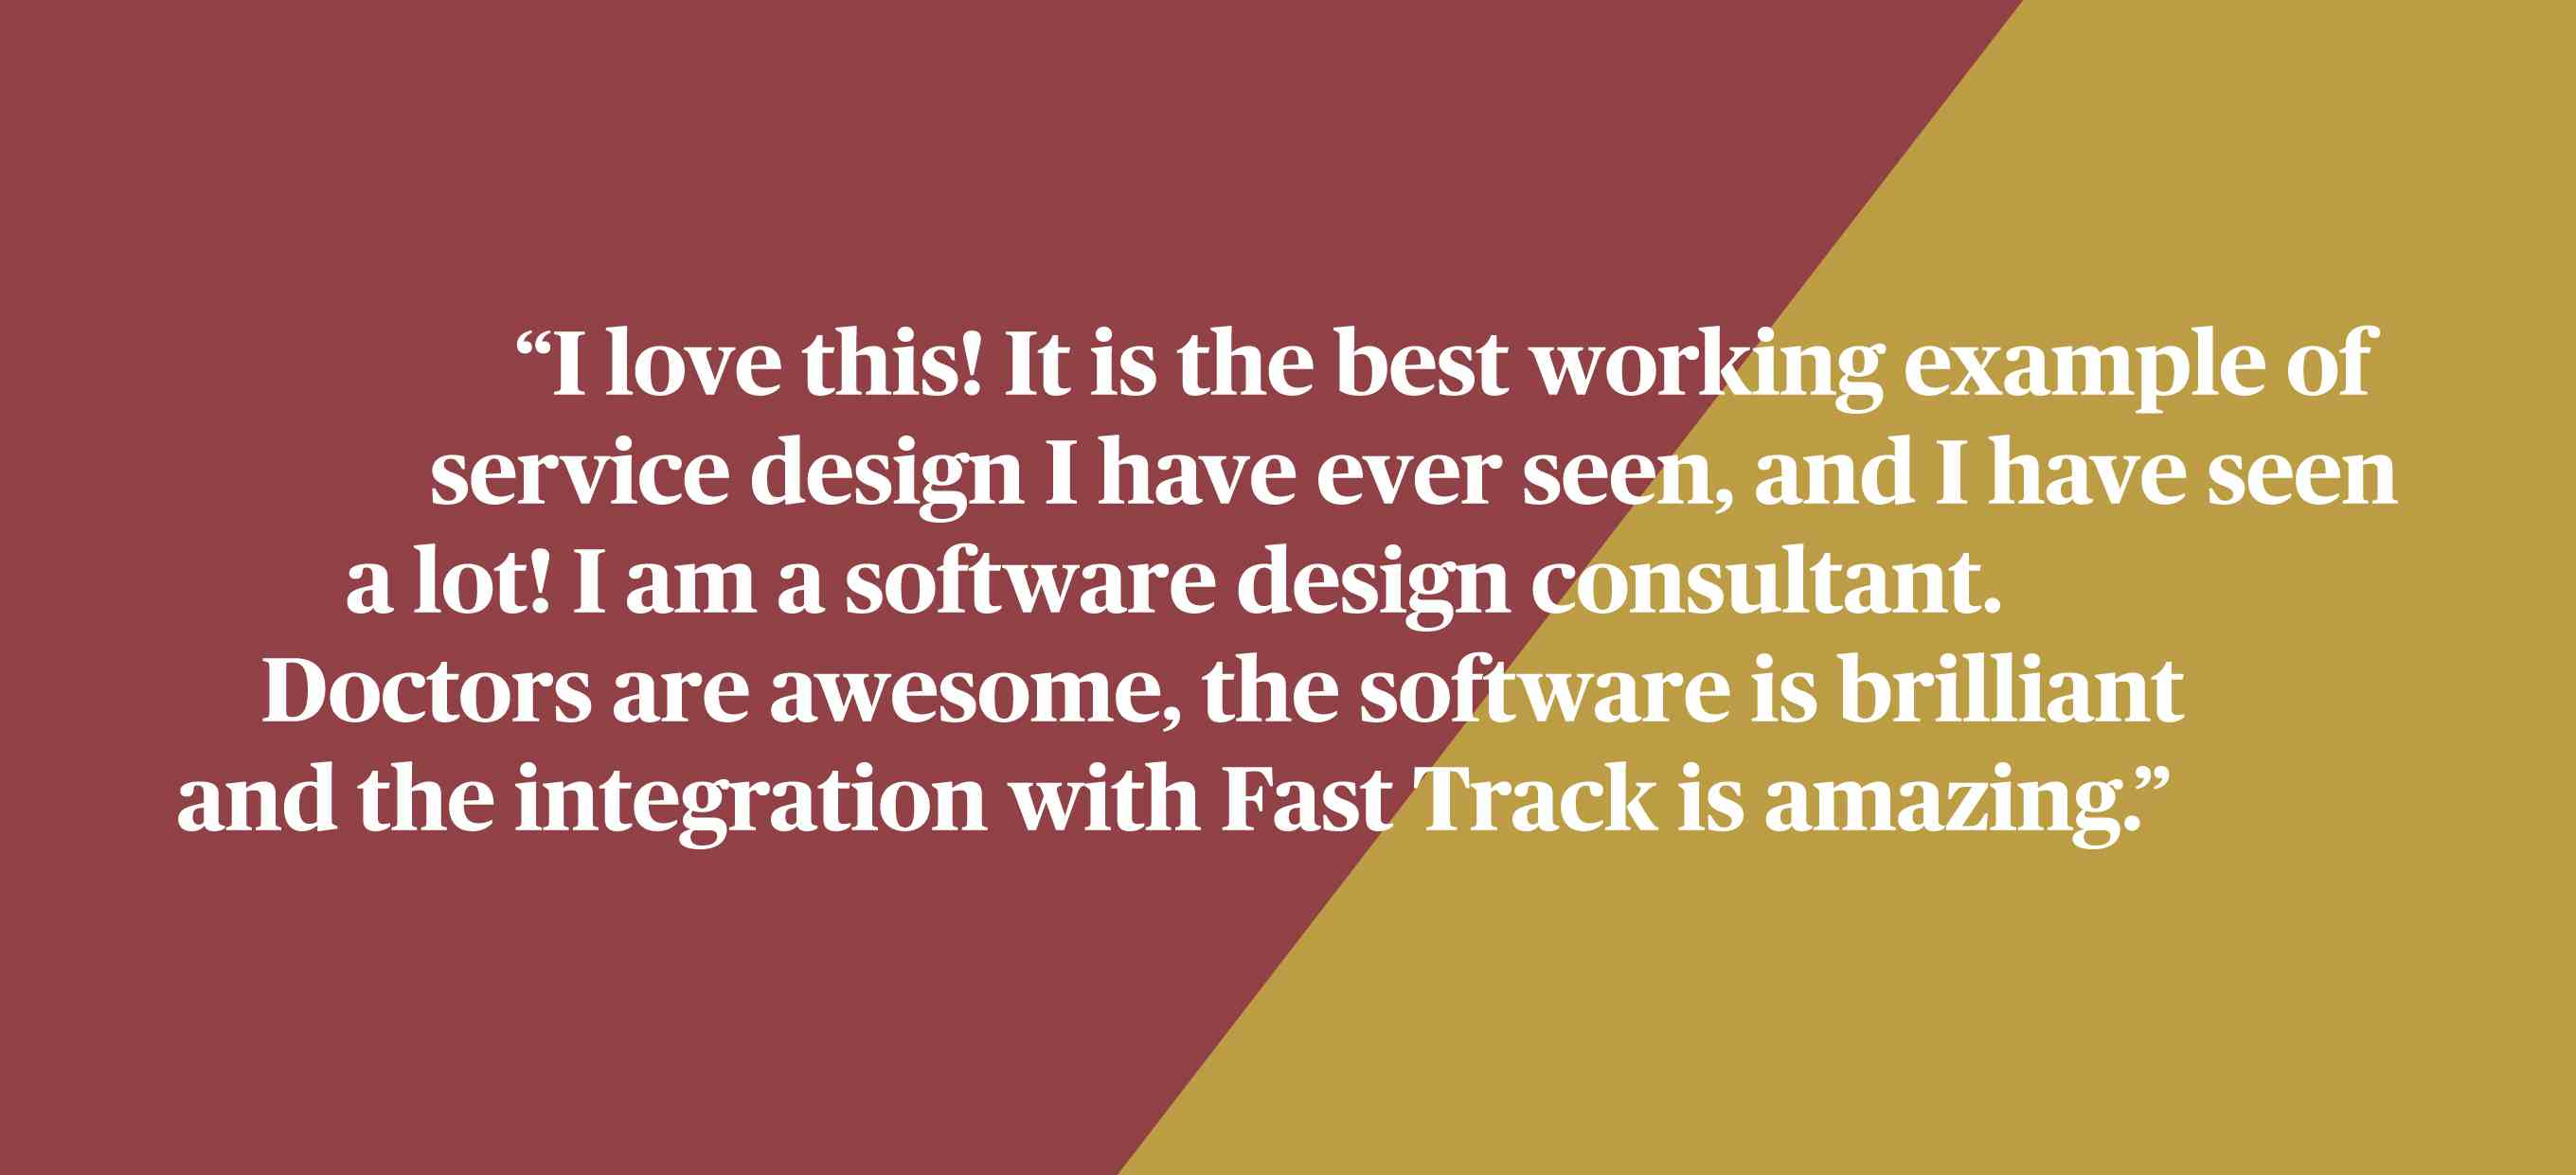 I love this! It is the best working example of service design I have ever seen, and I have seen a lot! I am a software design consultant. Doctors are awesome, the software is brilliant and the integration with Fast Track is amazing.